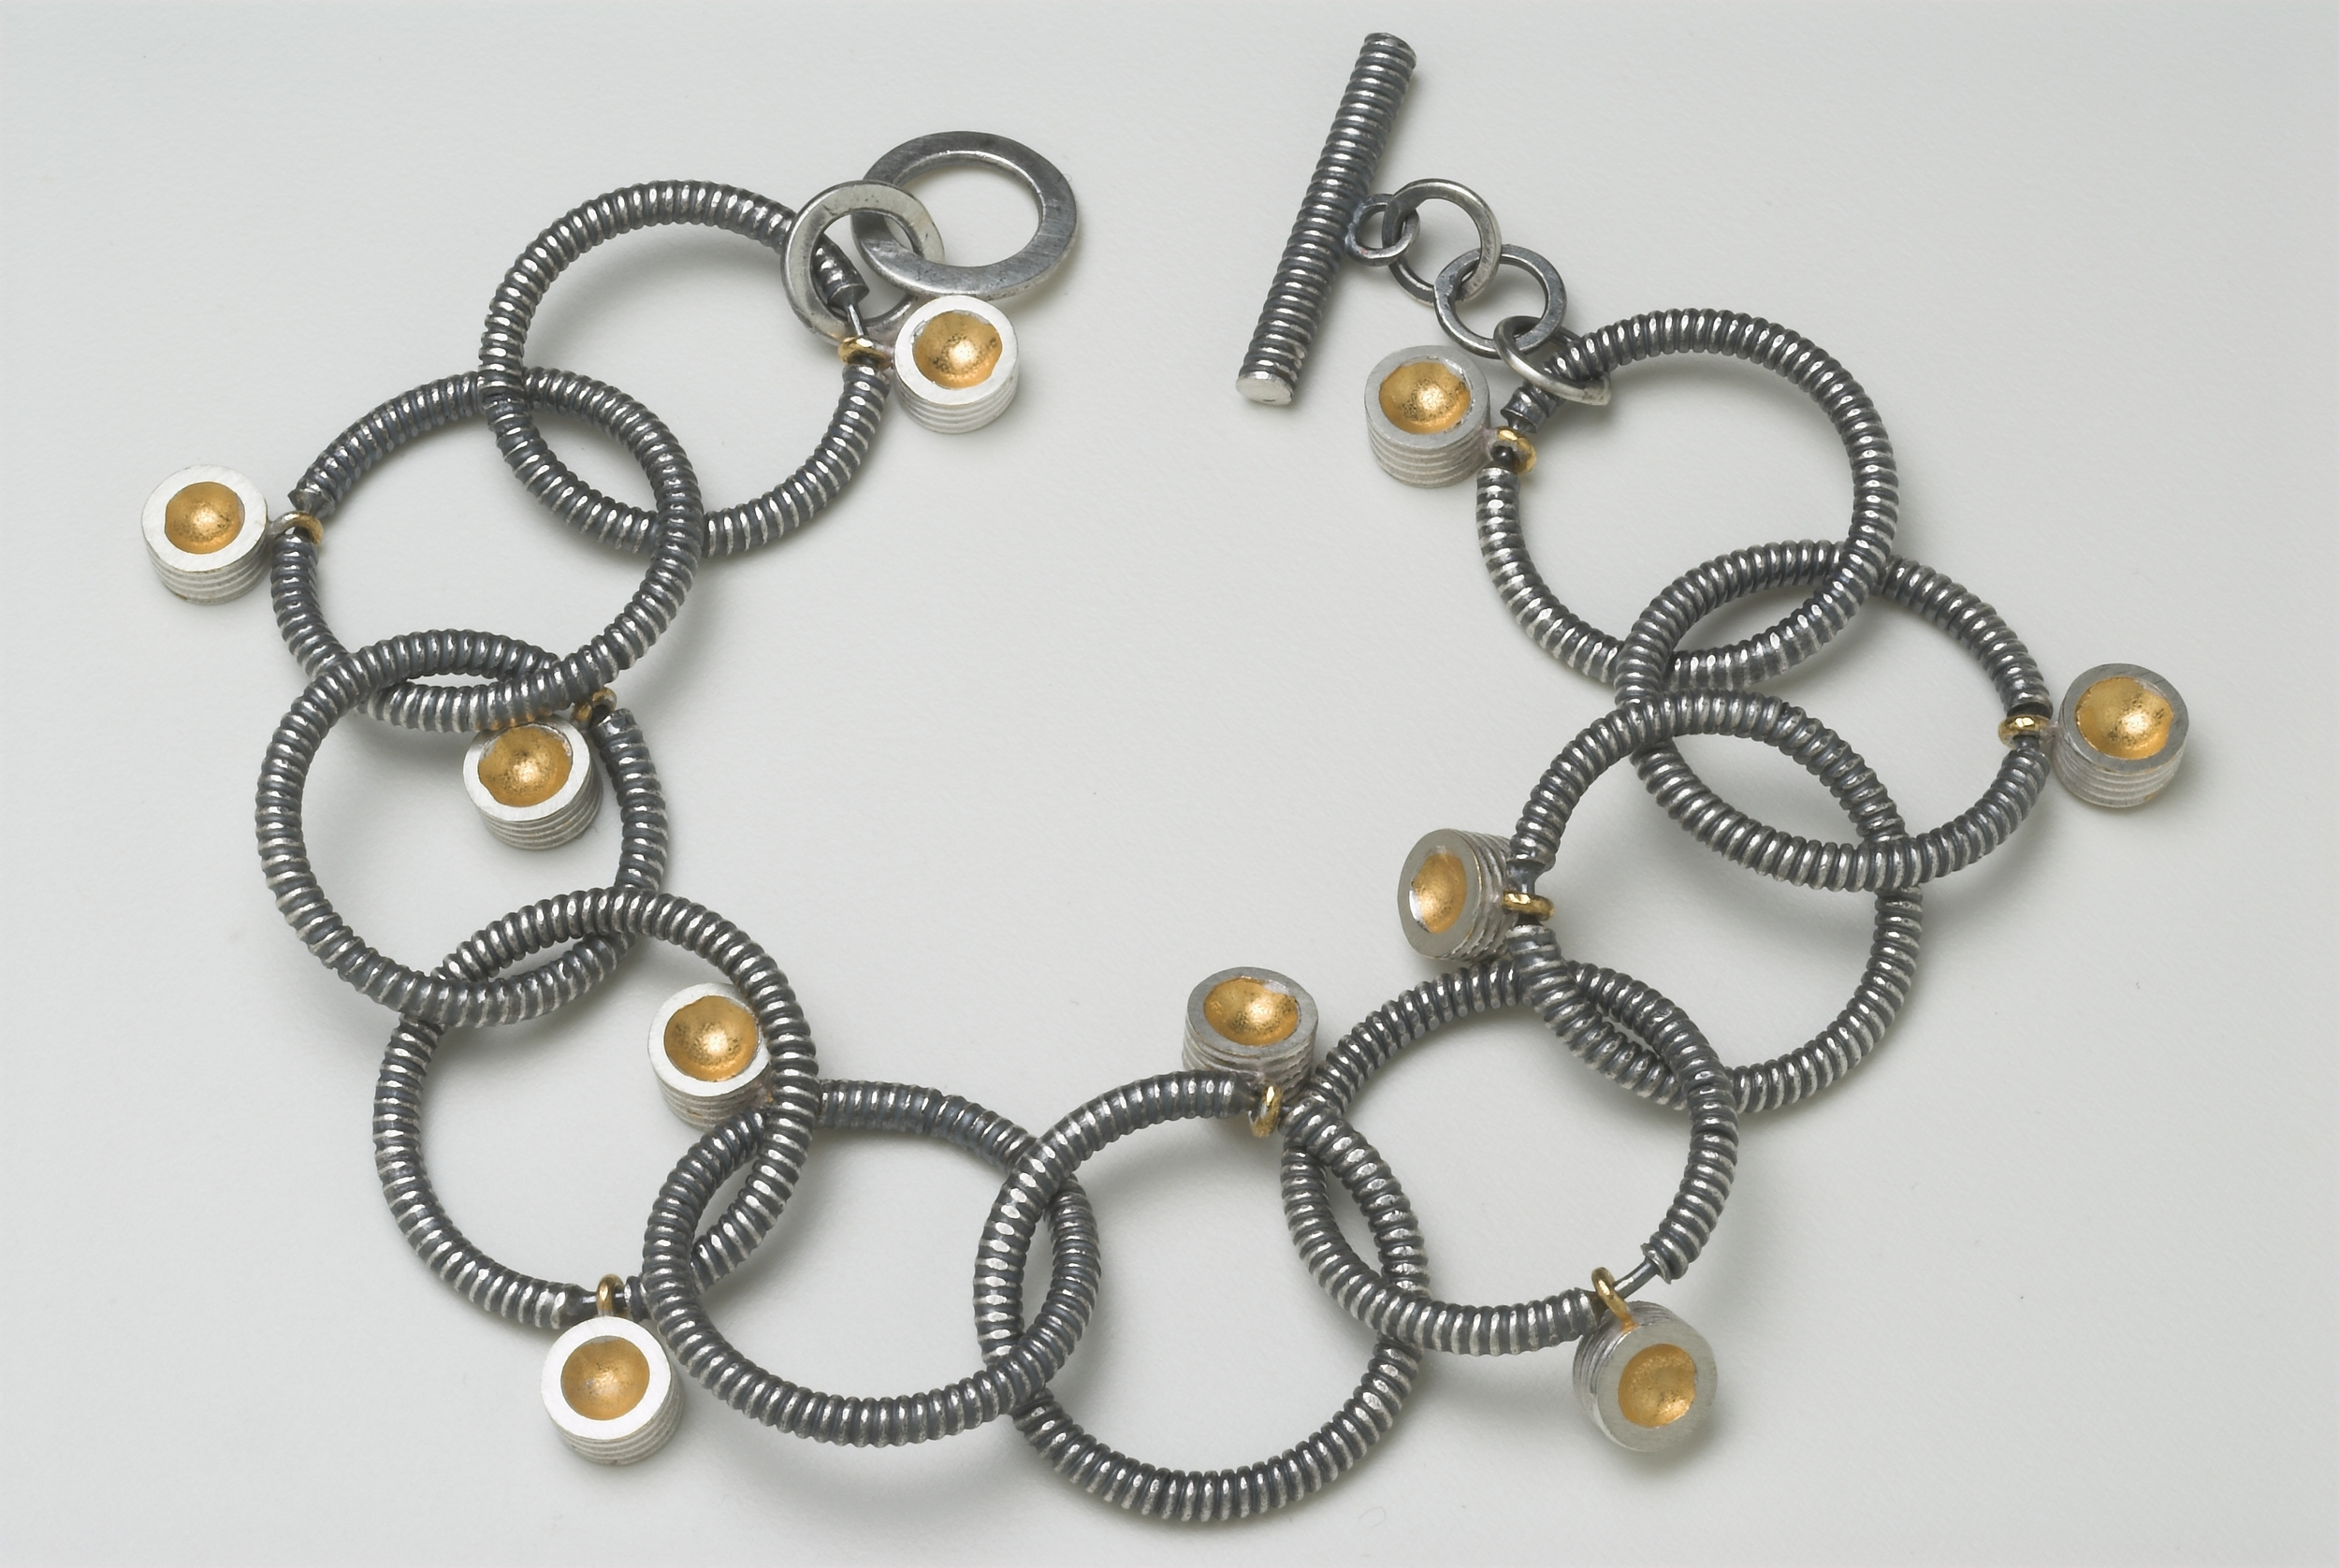 3. Oxidised silver and gold plate bracelet. £370